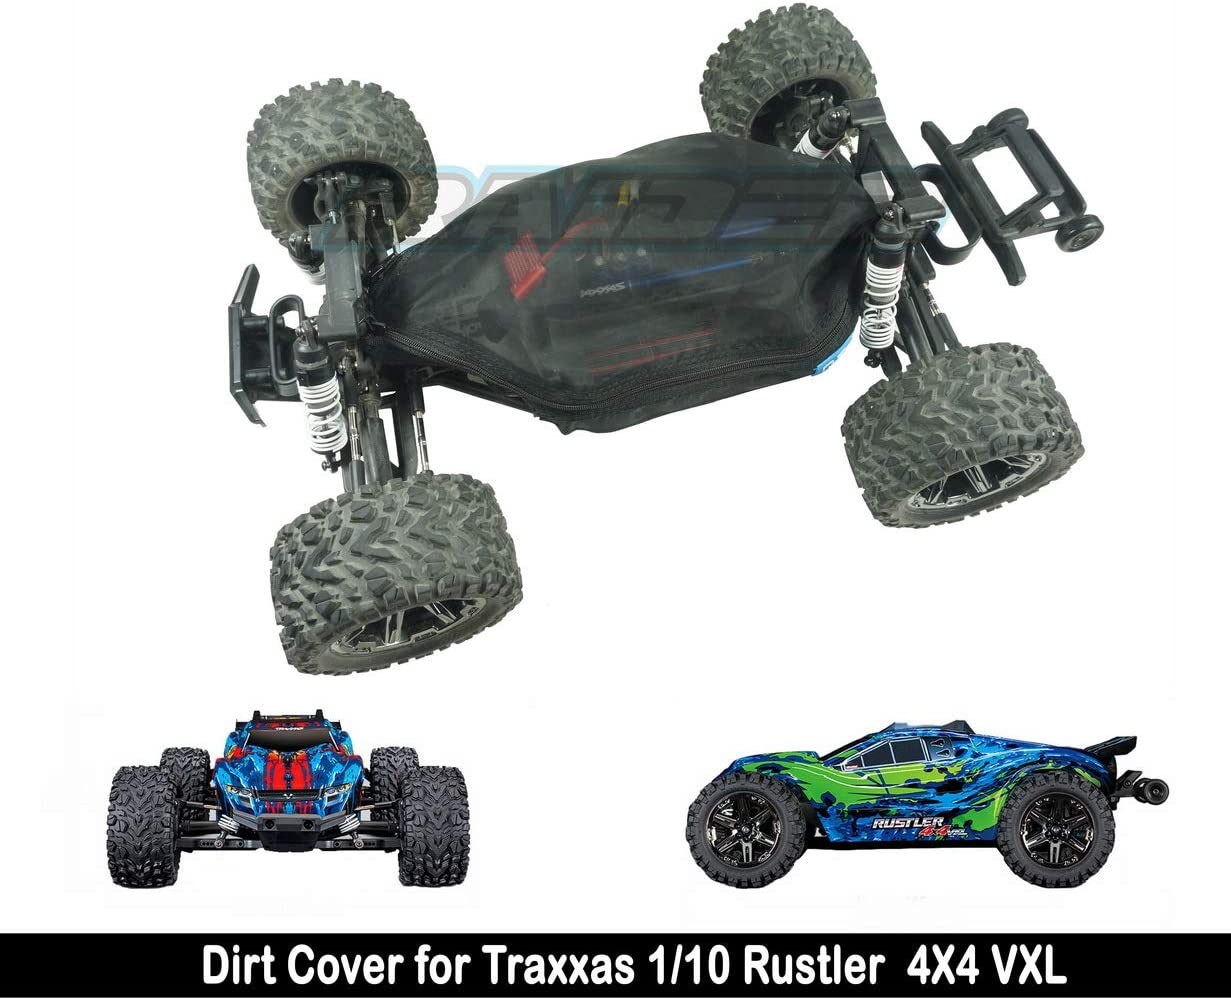 B07R71TWNJ Raidenracing Nylon Mesh Chassis Dirt Dust Resist Guard Cover for Traxxas 1/10 Rustler 4X4 VXL 4WD Brush & Brushless 71e8WSak3SL